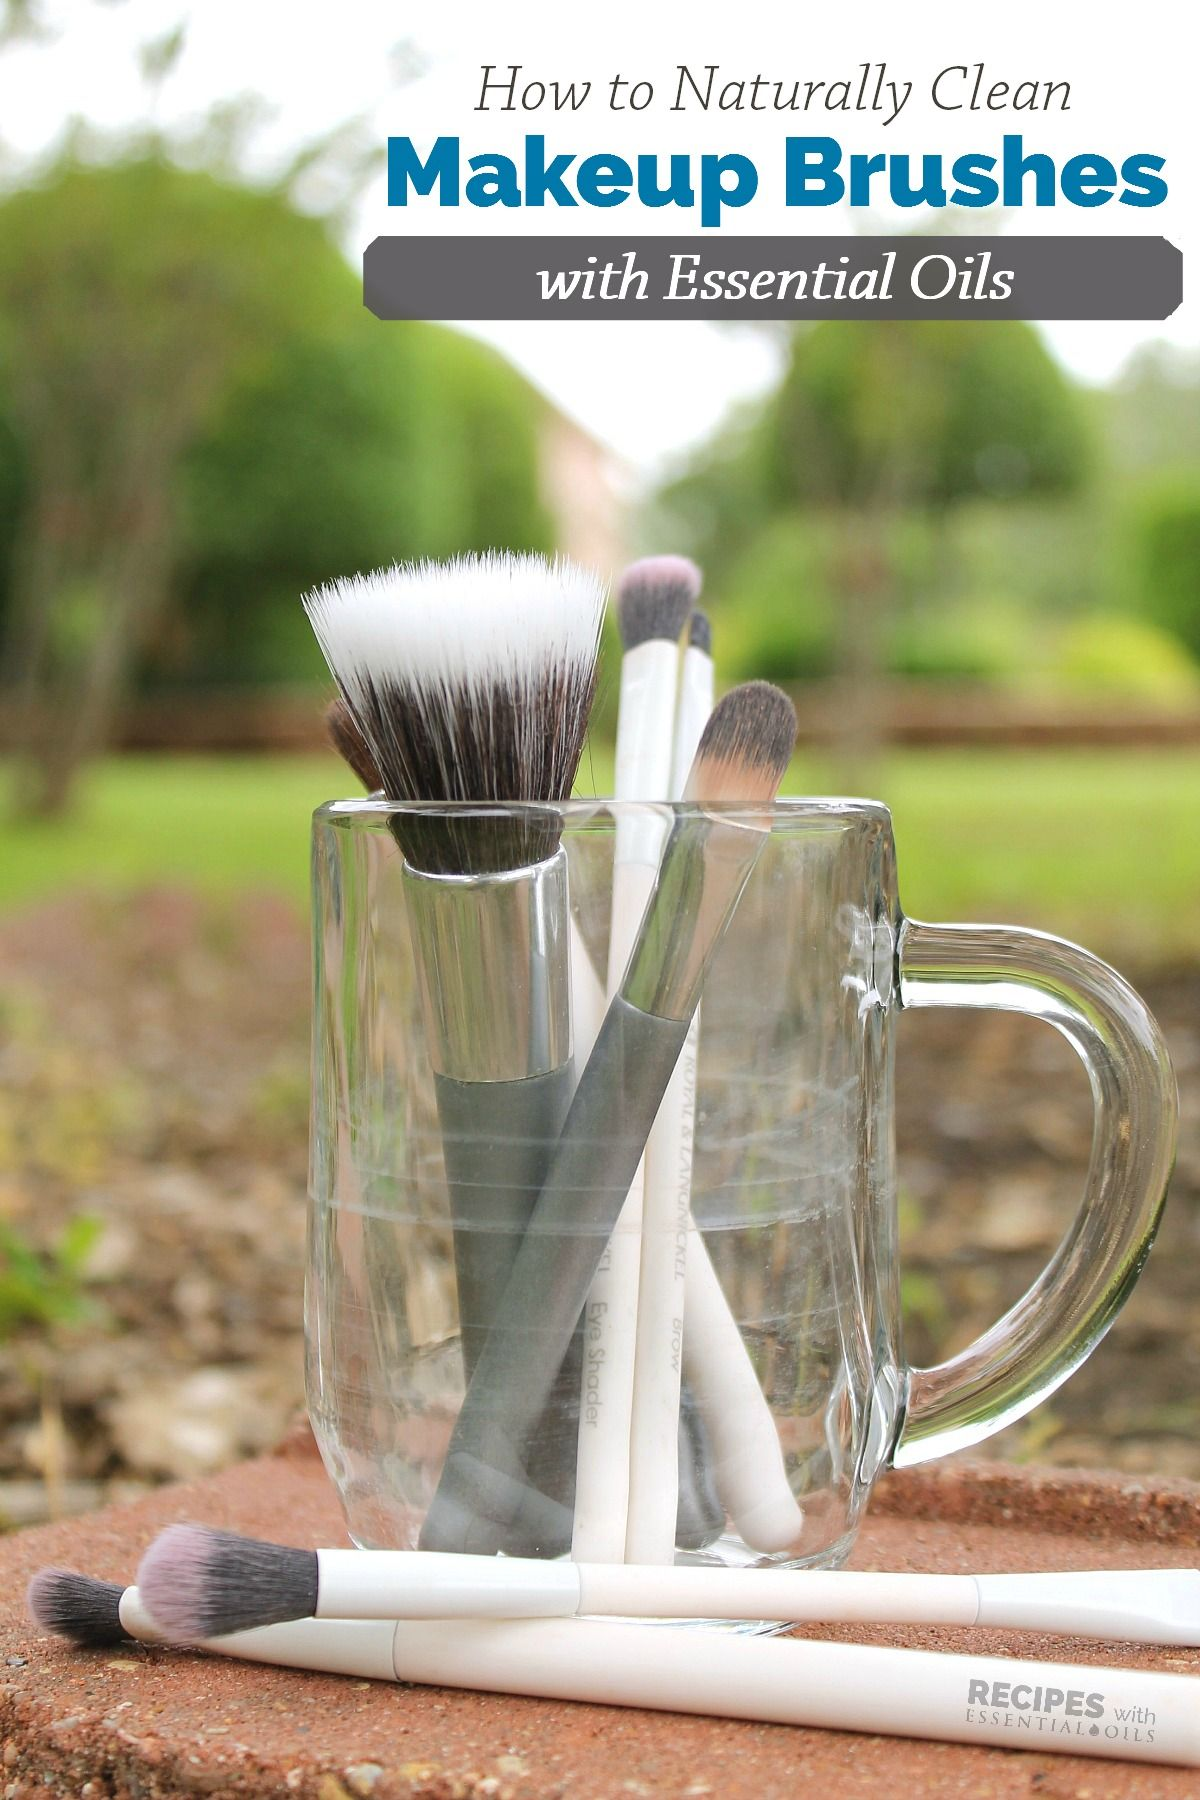 Makeup Brush Cleaner Recipe How to clean makeup